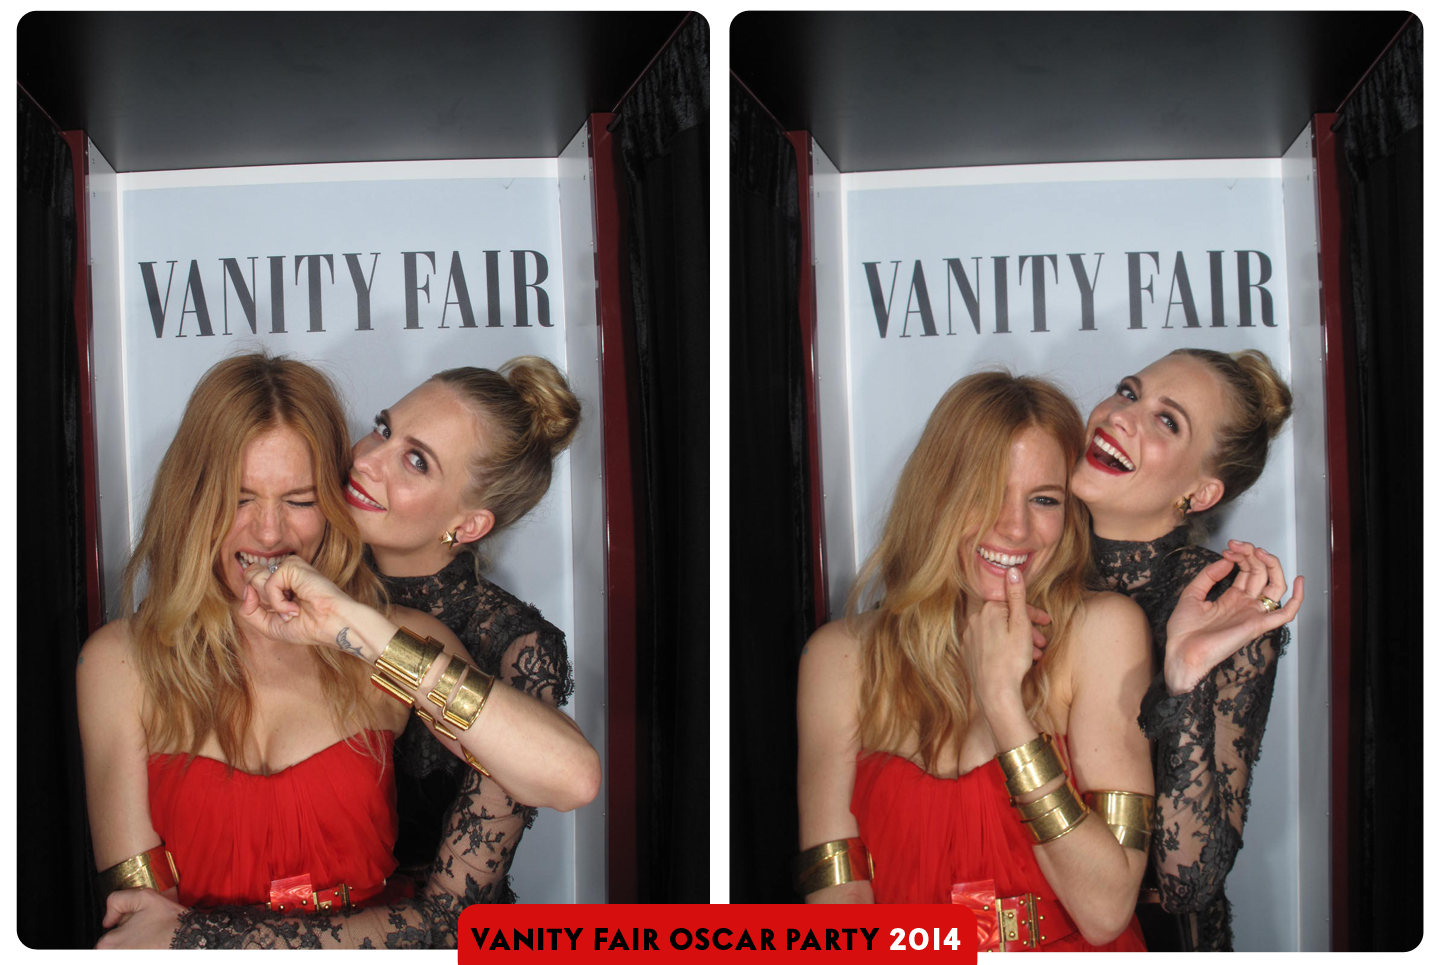 53154ac1257313775447df22_ss17-miller-delevingne-fair-photo-booth.png